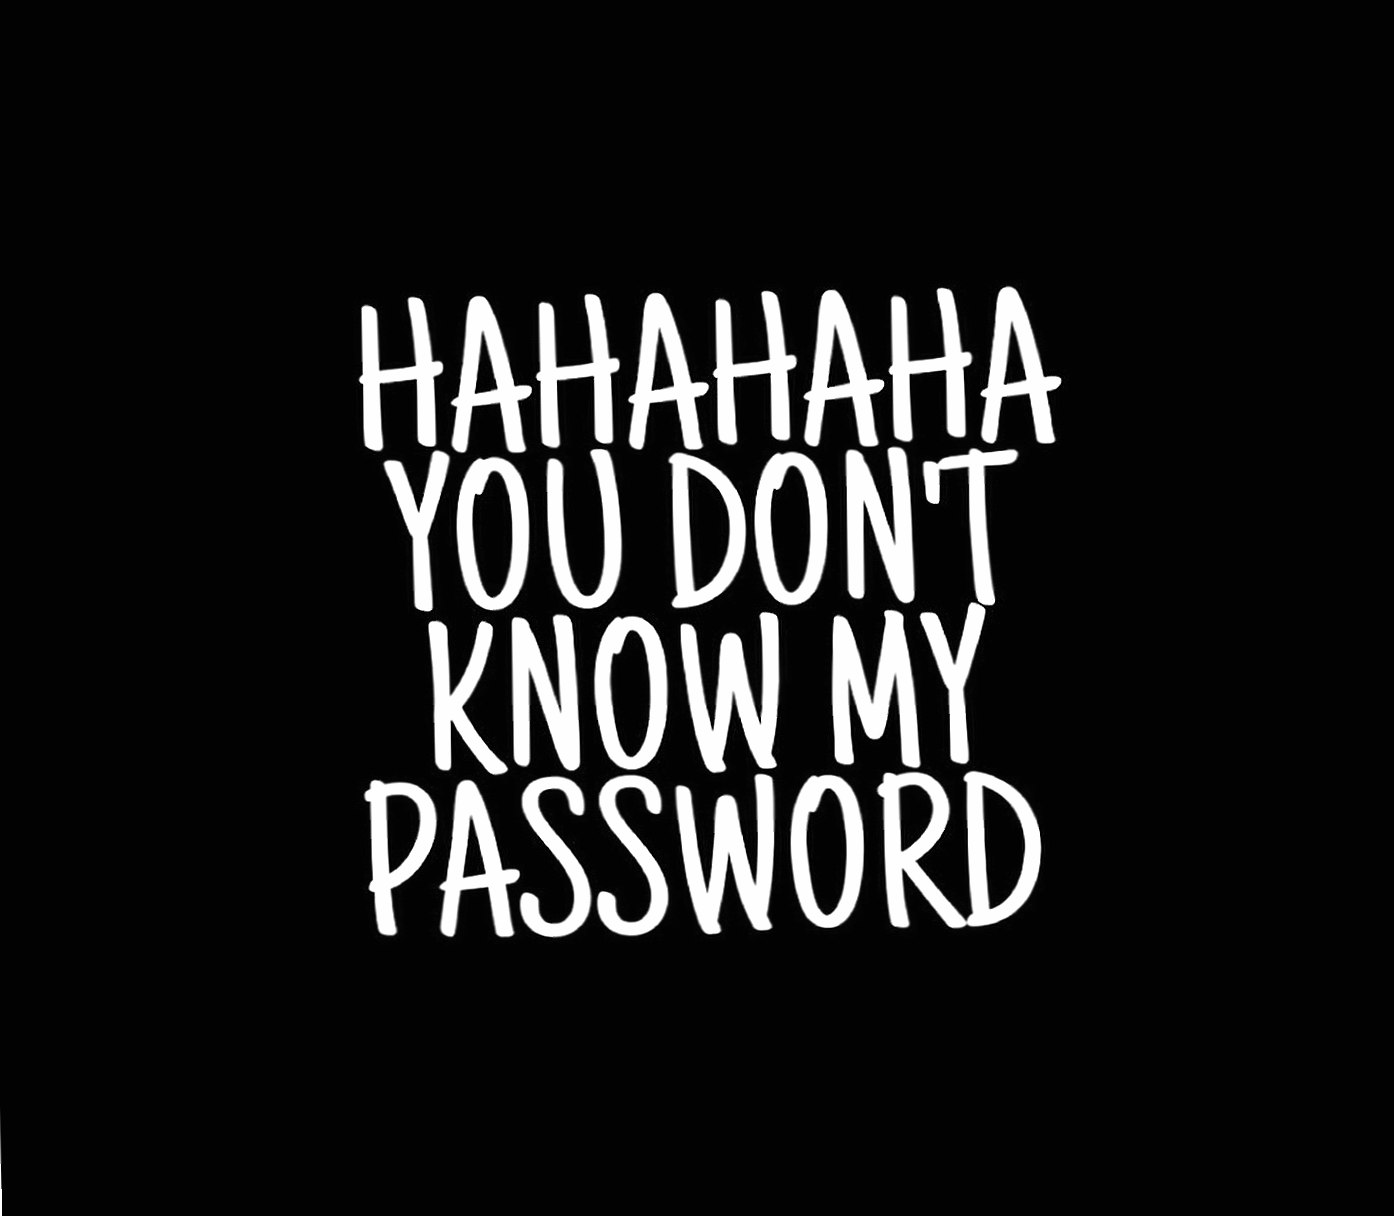 Password wallpapers HD quality